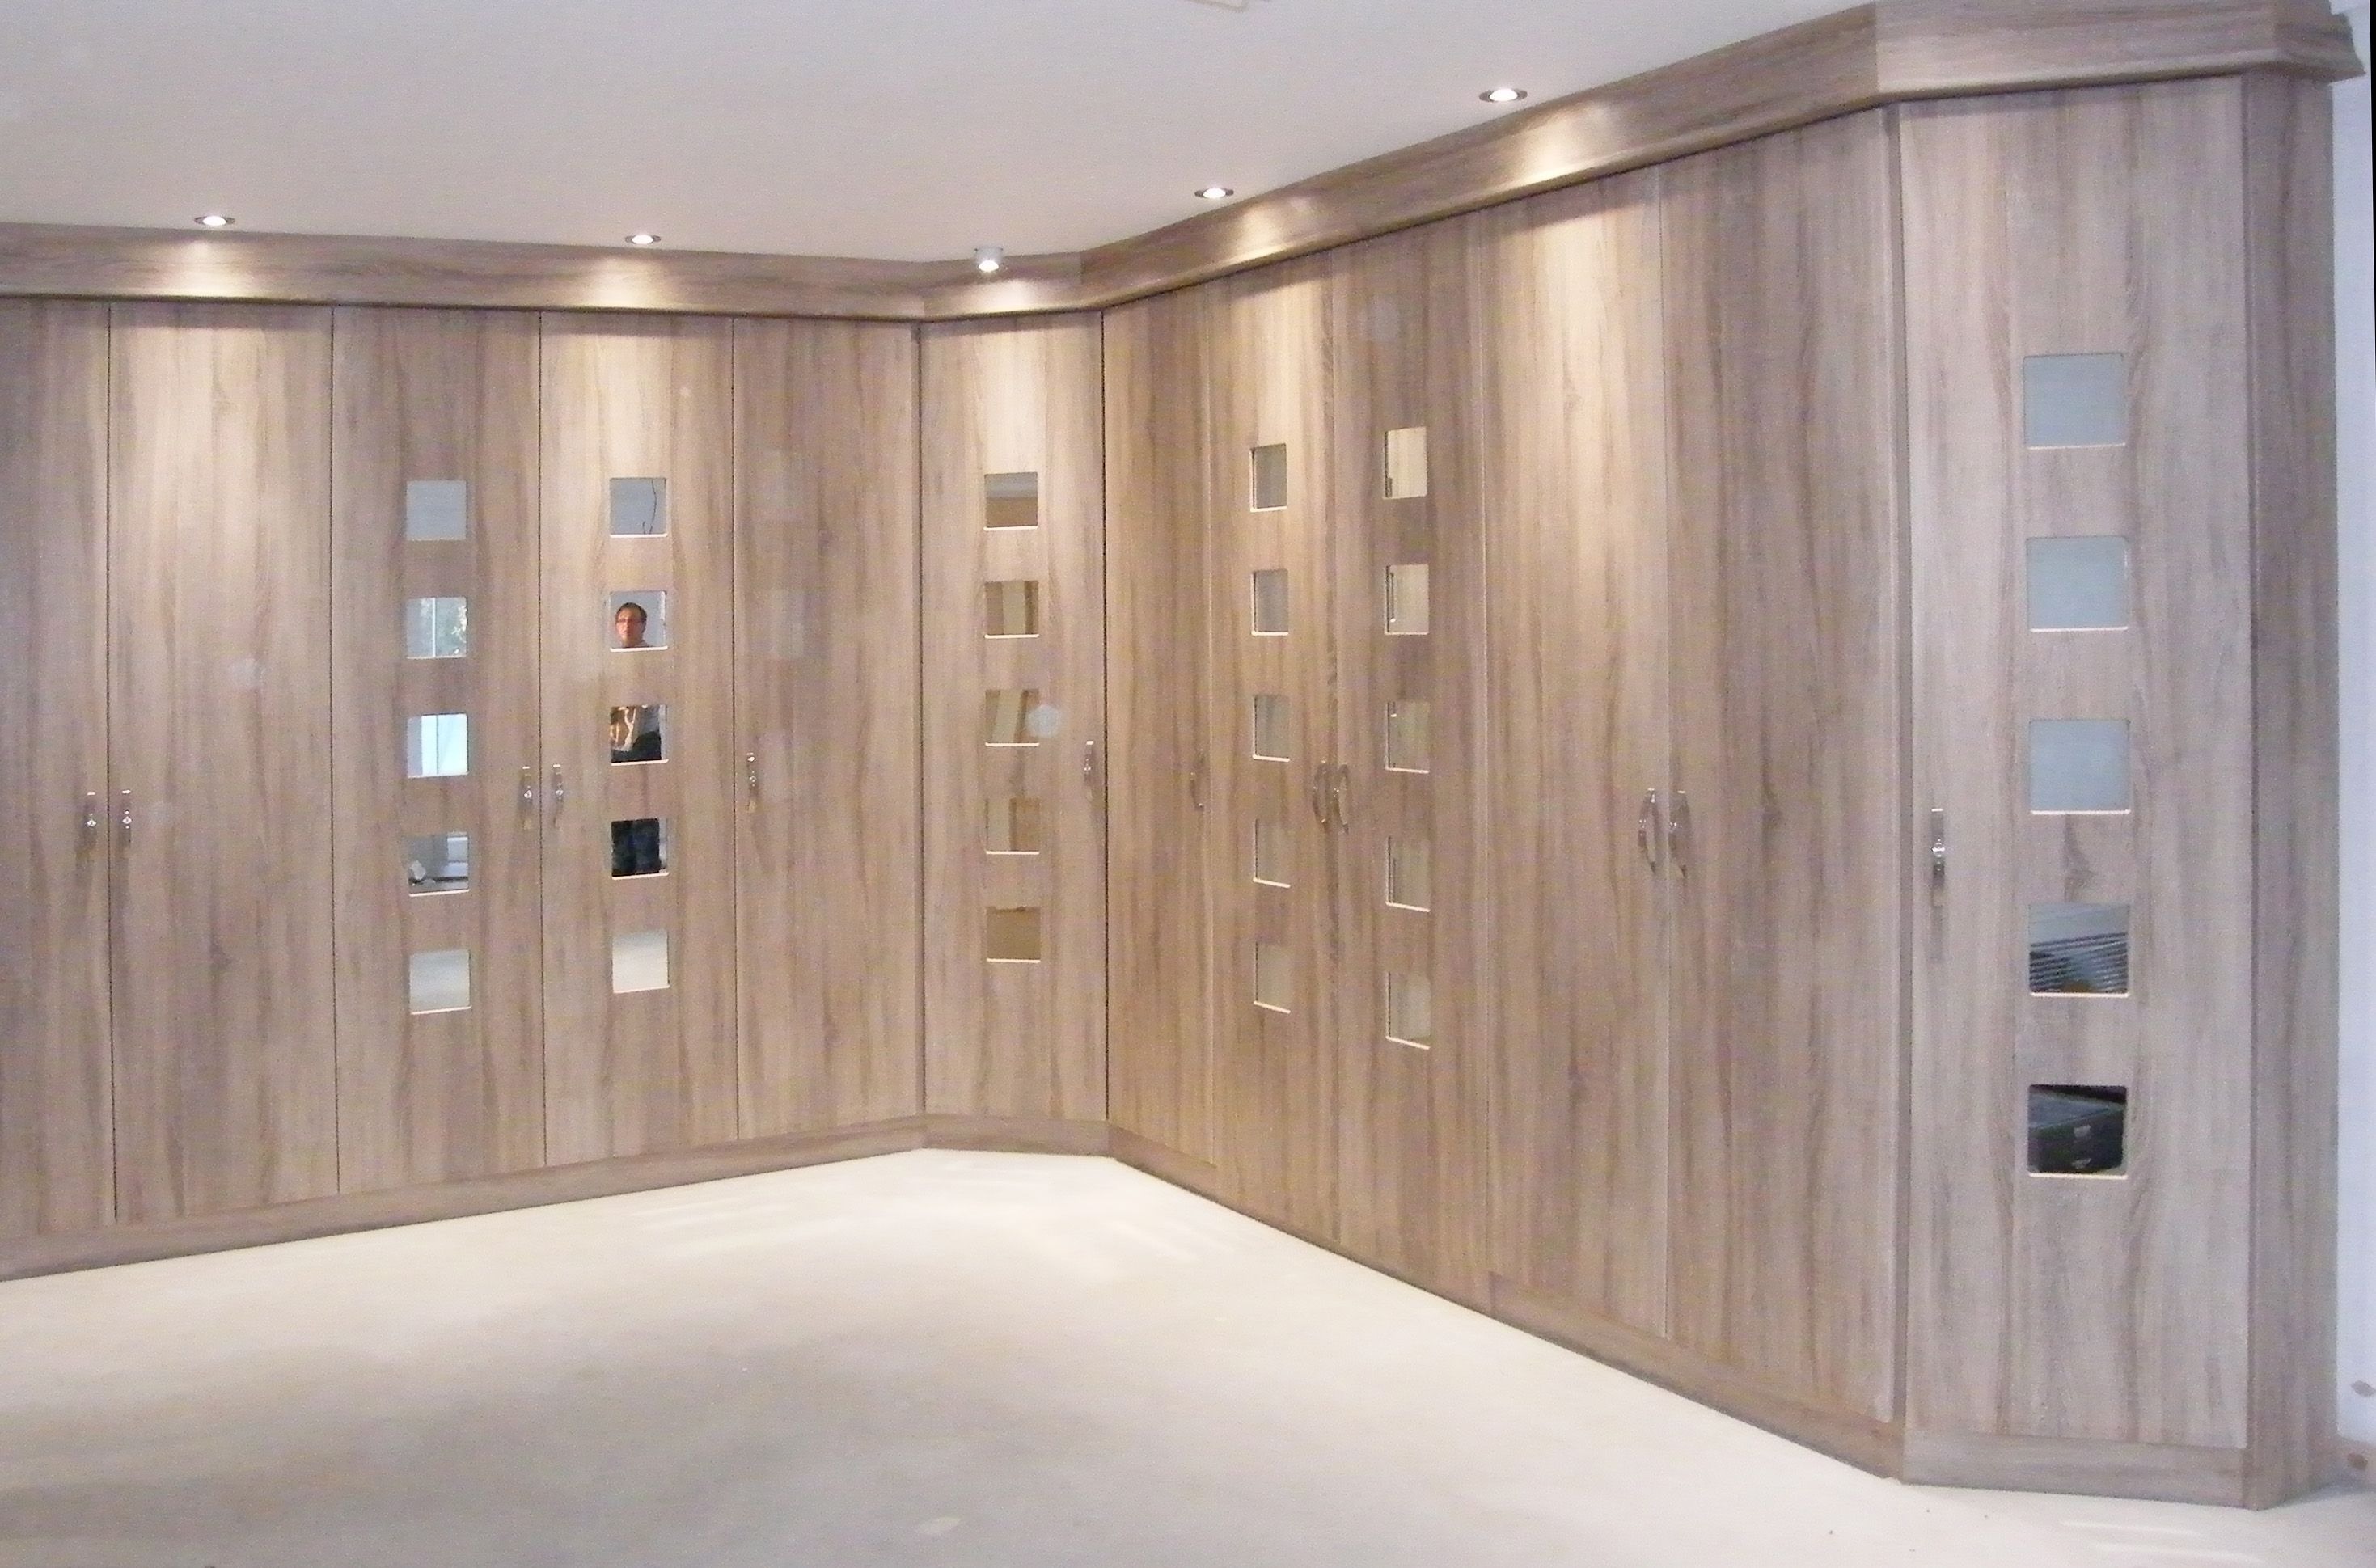 Contemporary Fitted Wardrobe Design With Wooden Style Doors For Wardrobes Built In Bedroom Cabinets Built In Wardrobe Designs Bedroom Built In Wardrobe